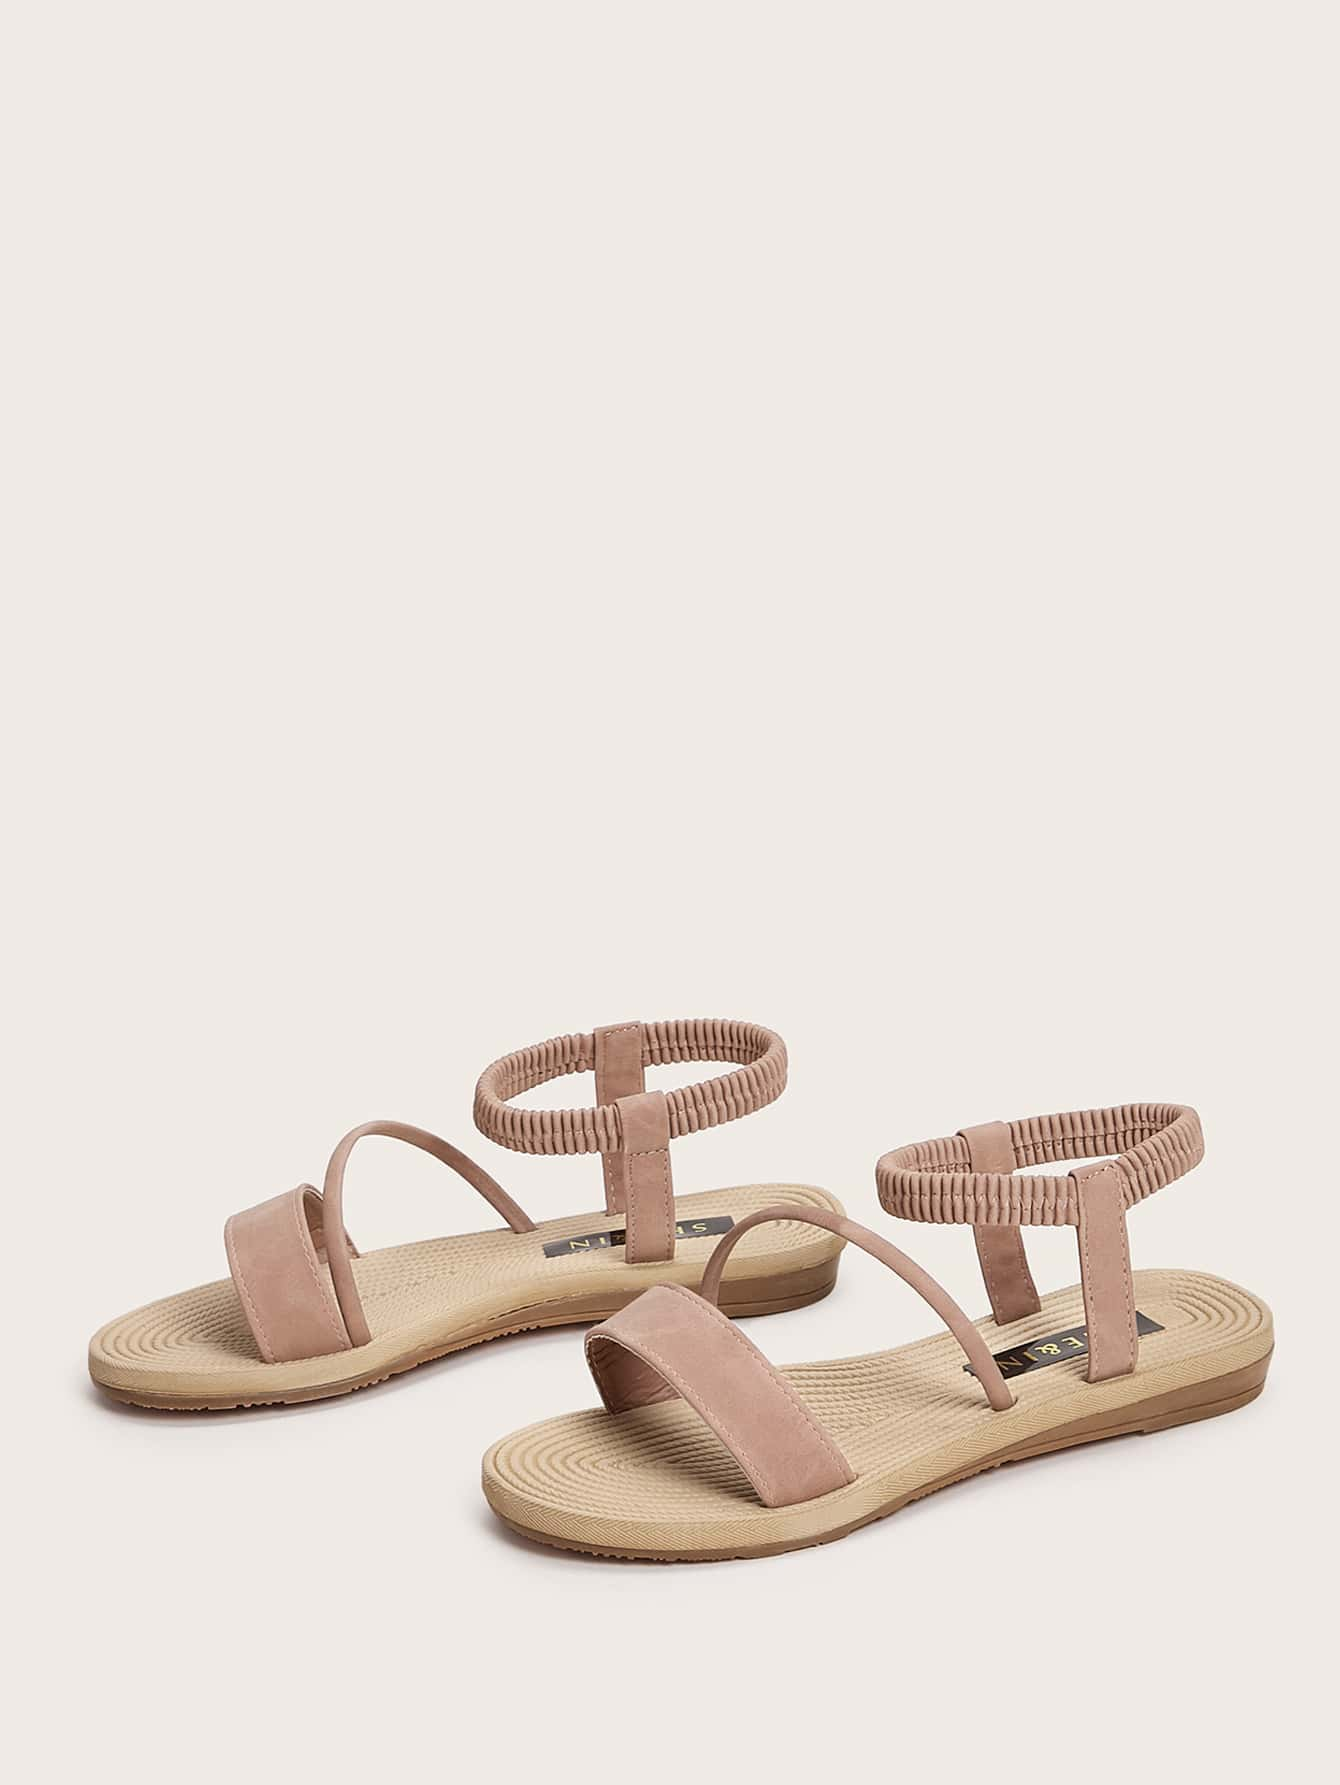 Wide Fit Ankle Strap Sandals - FLJ CORPORATIONS